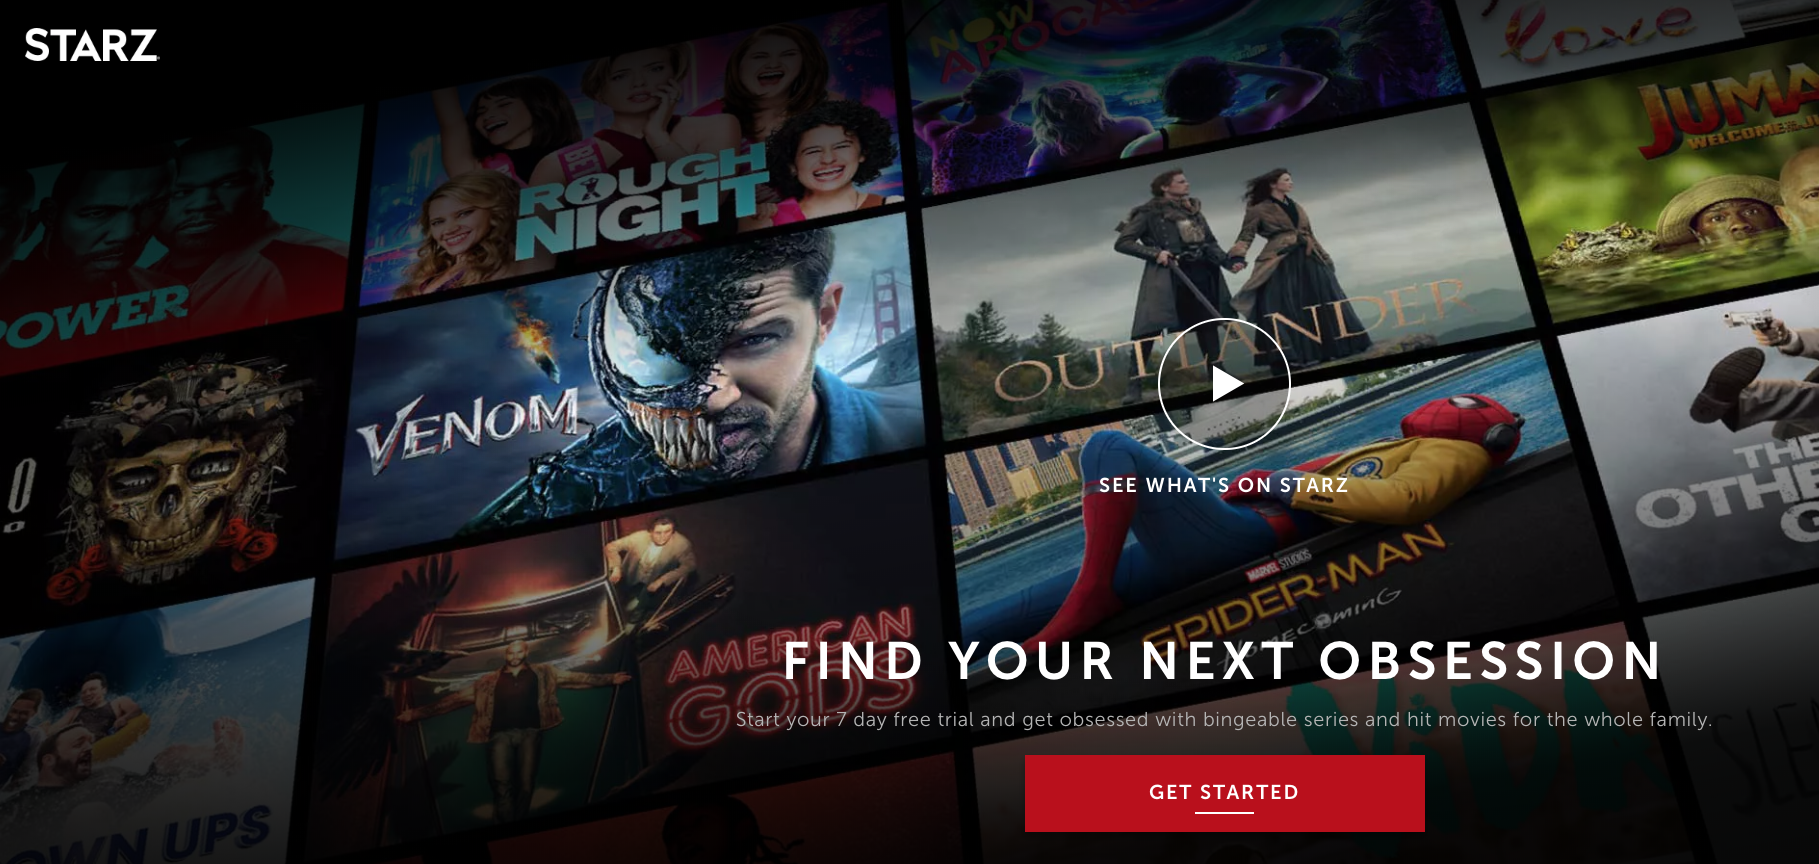 How to watch movies online for free — legally